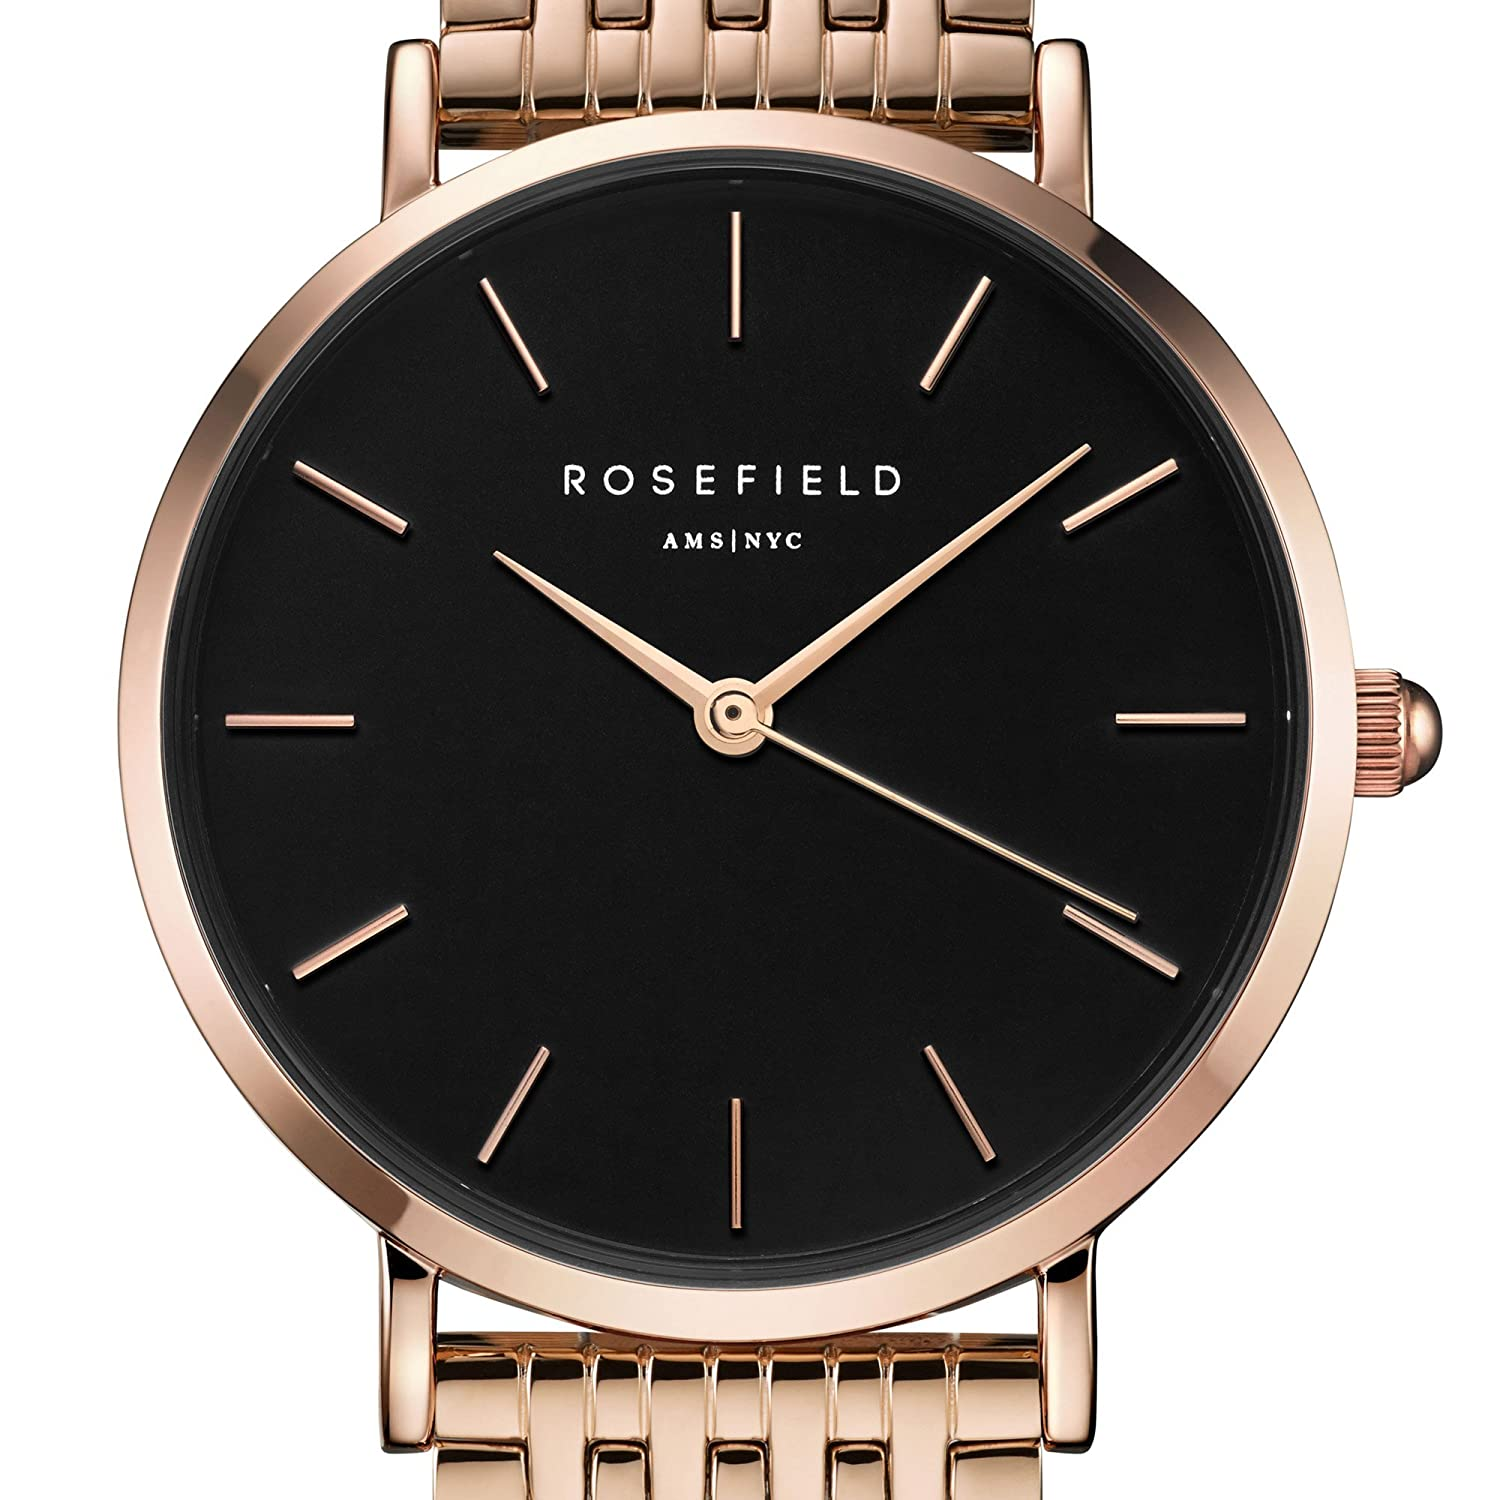 Rosefield The Upper East Side Cuarzo - Reloj (Reloj de Pulsera, Femenino, Rose Gold, Acero Inoxidable, Rose Gold, Alrededor): Amazon.es: Relojes